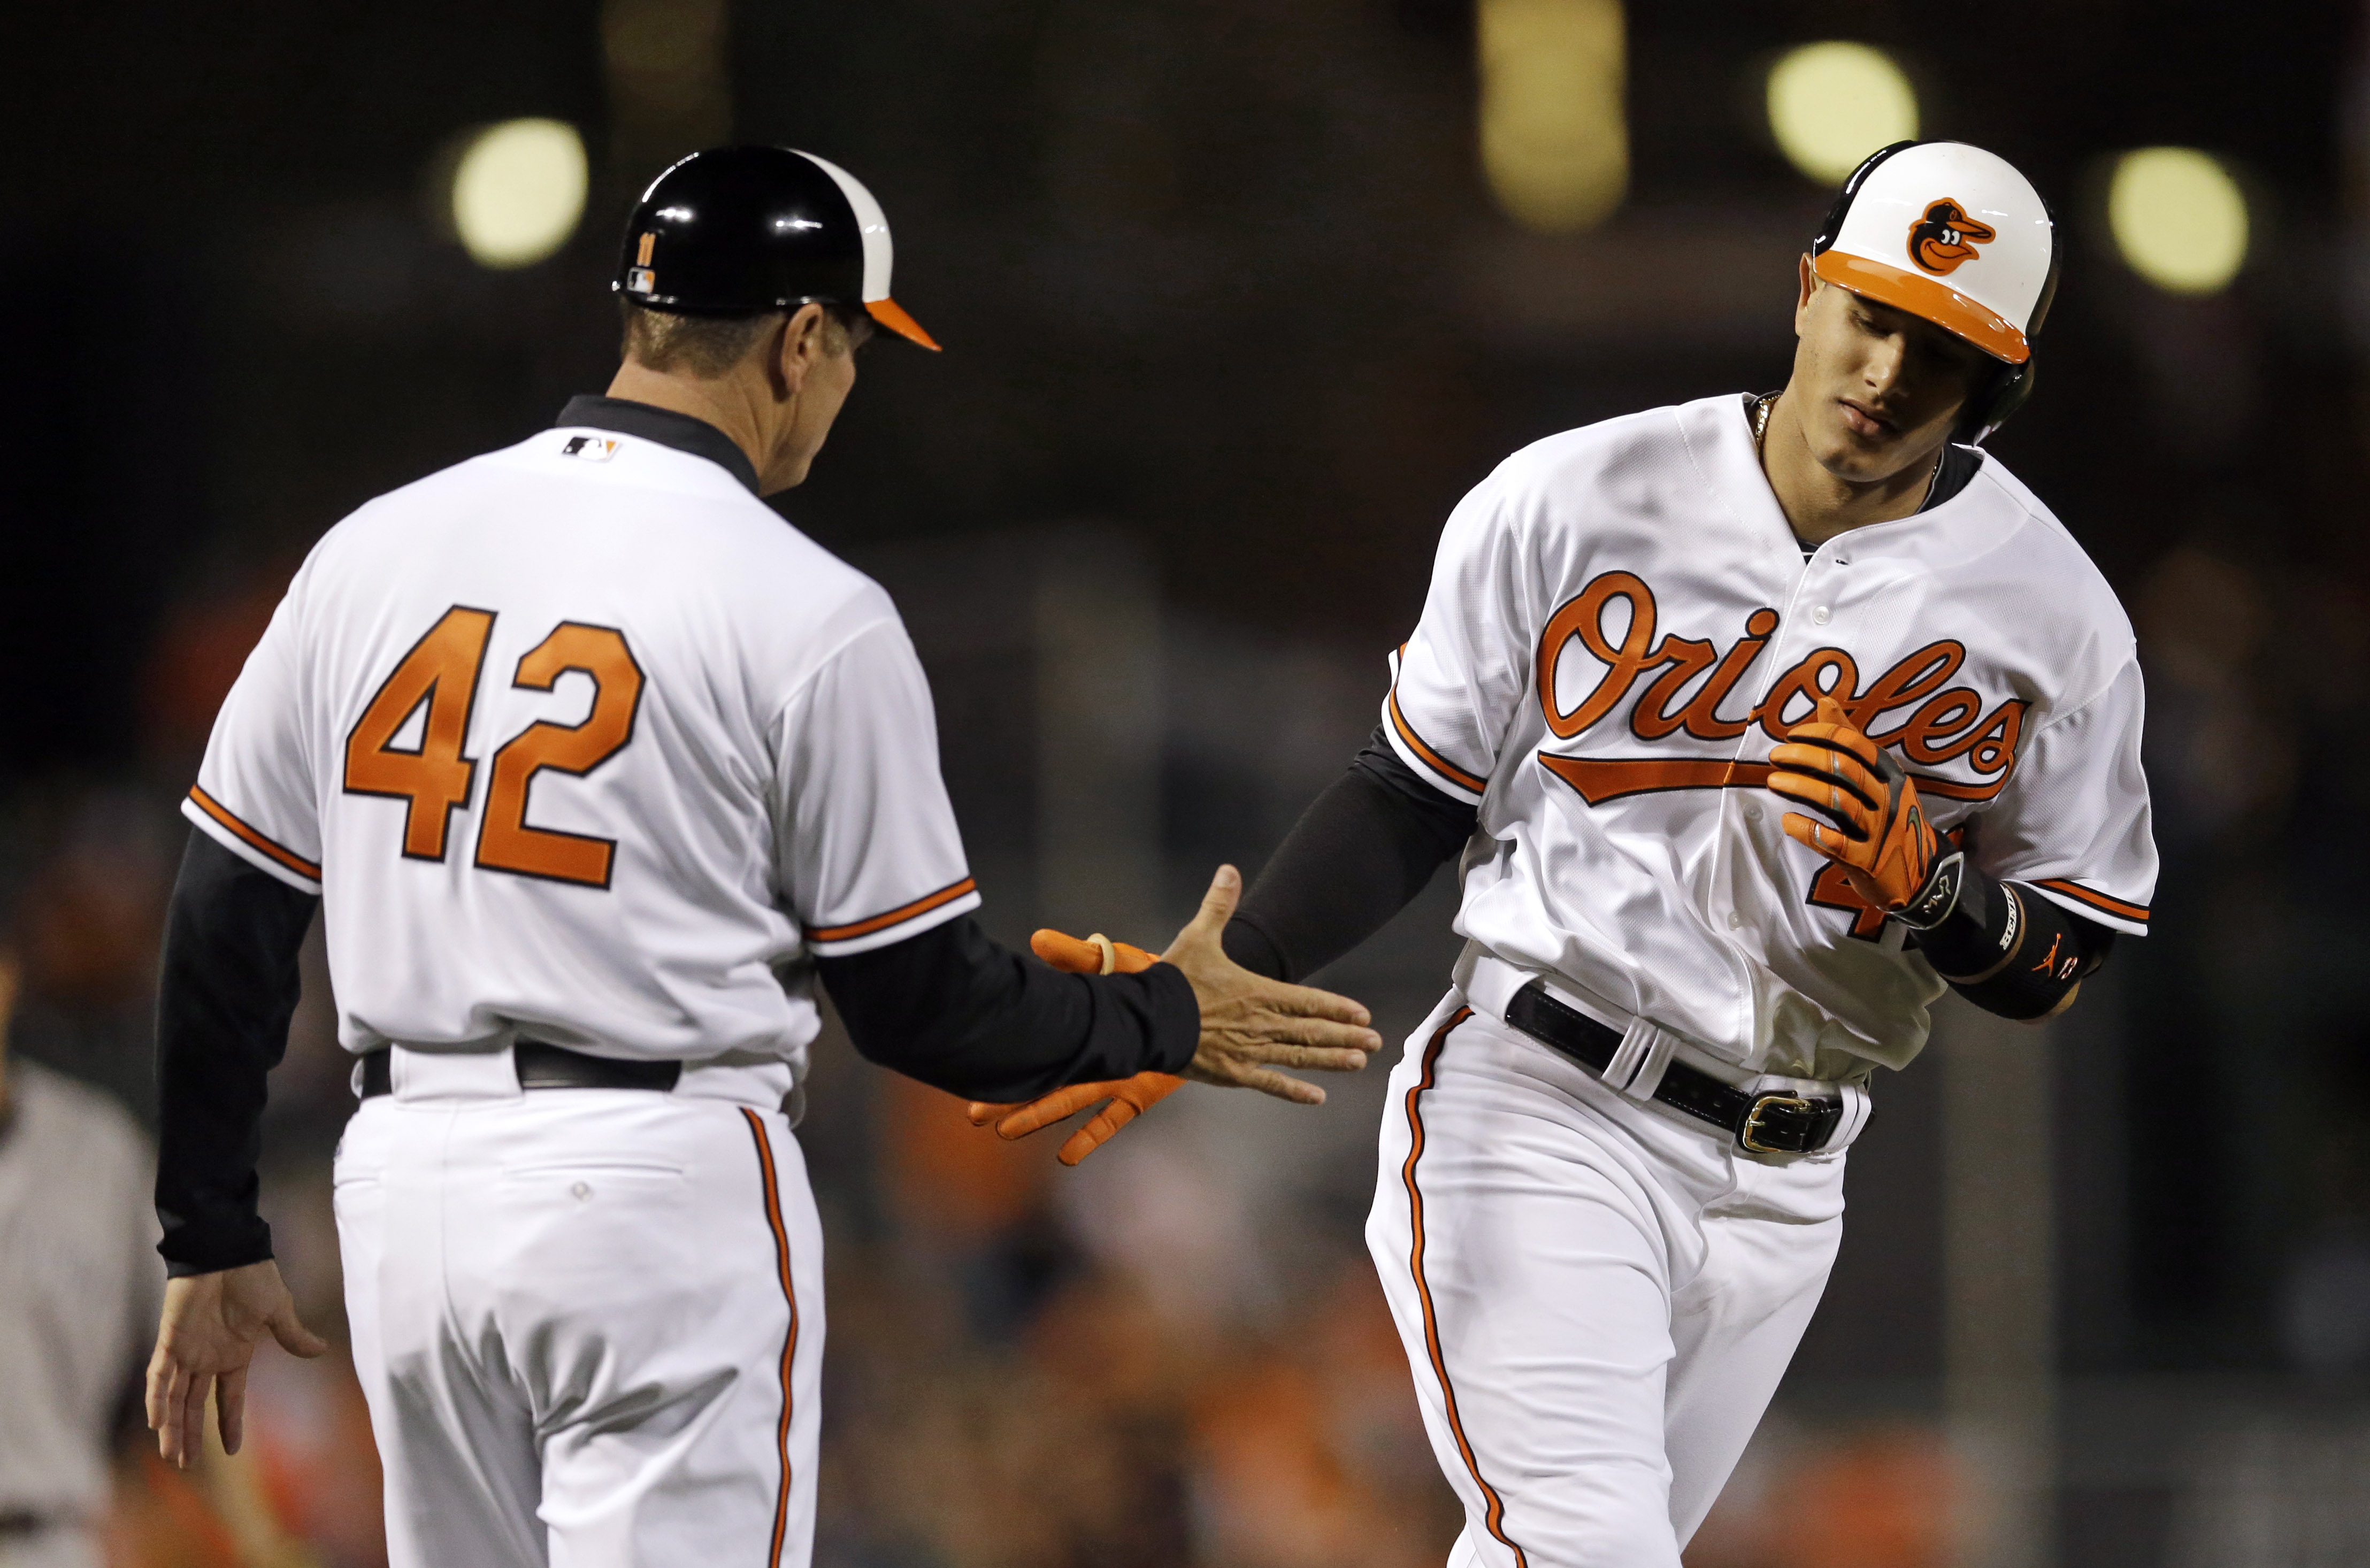 Baltimore Orioles' Manny Machado, right, greets third base coach Bobby Dickerson as he rounds the bases on a solo home run in the fourth inning of a baseball game against the New York Yankees, Wednesday, April 15, 2015, in Baltimore. (AP Photo/Patrick Sem